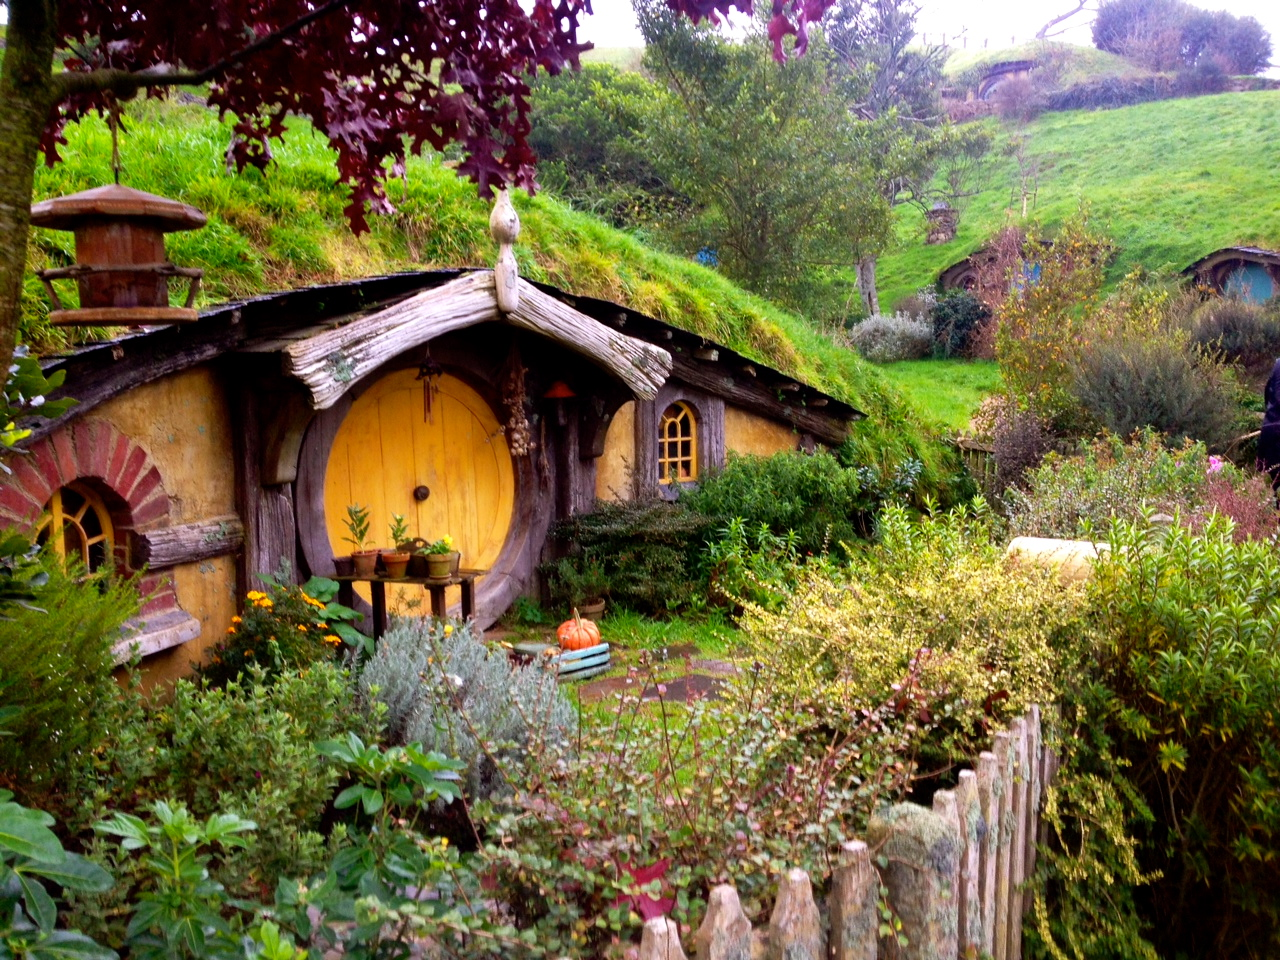 A short post about Hobbits